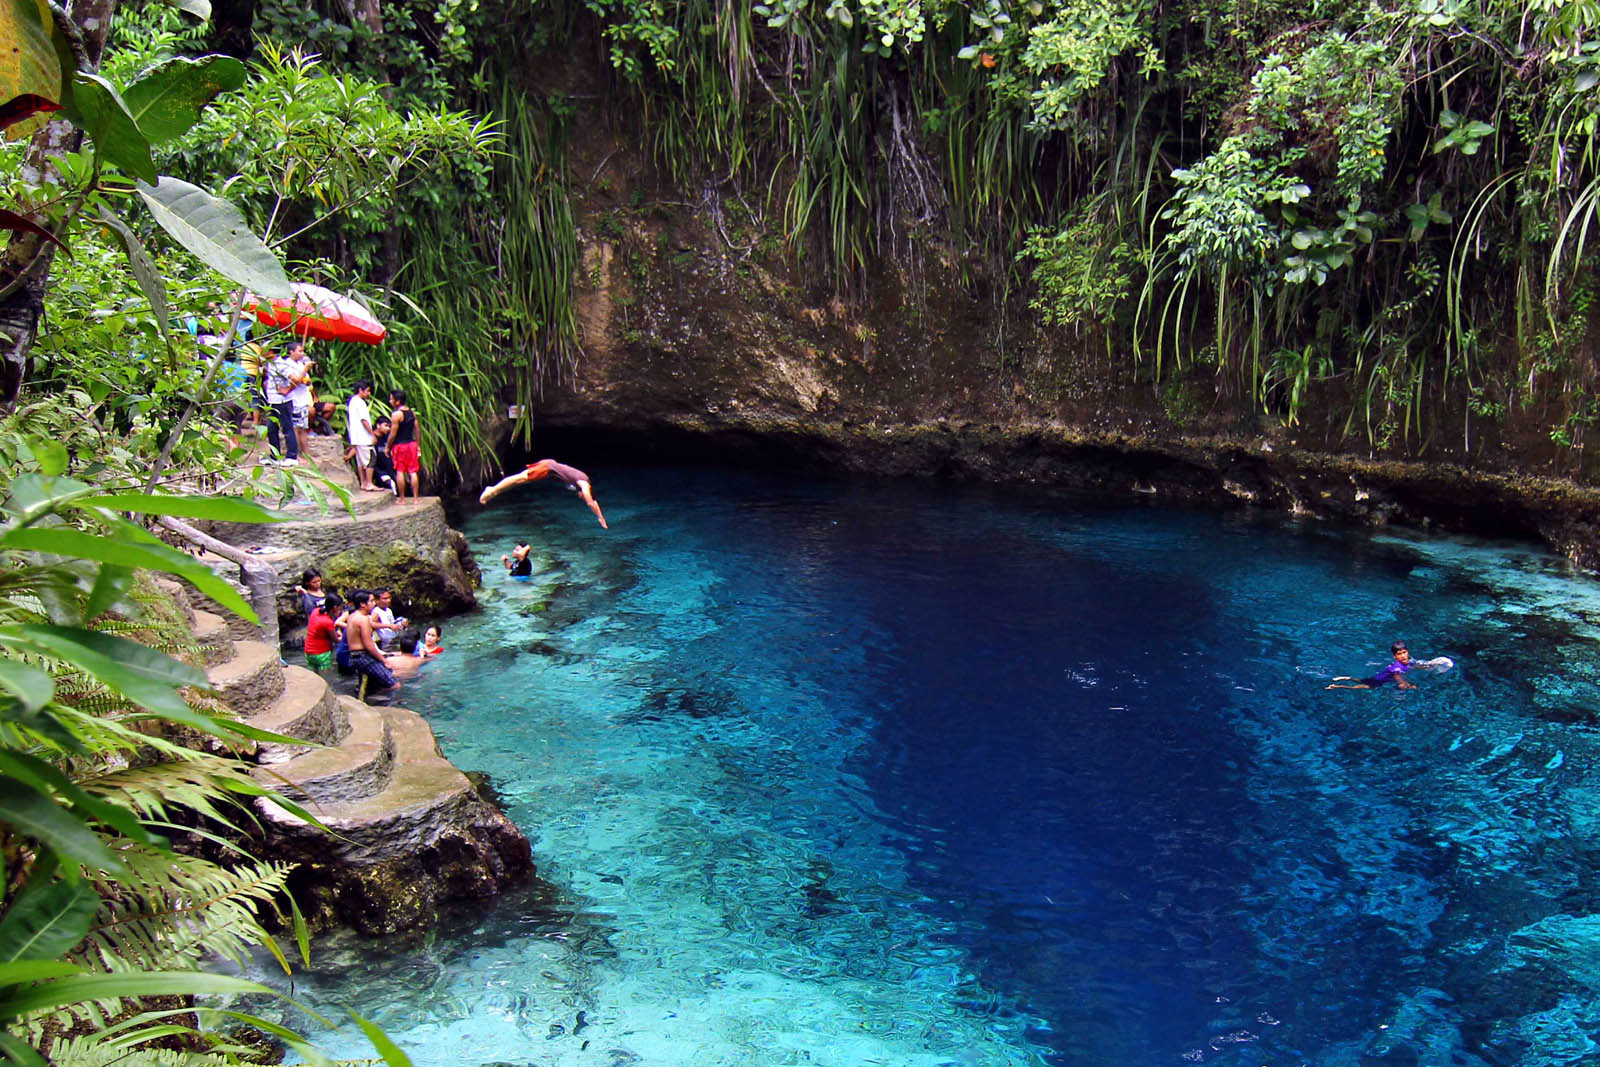 TRULY ENCHANTED. Local tourists enjoy swimming in the blue waters of the Enchanted River in Hinatuan town in Surigao del Sur on June 22, 2012. MindaNews photo by Erwin Mascarinas